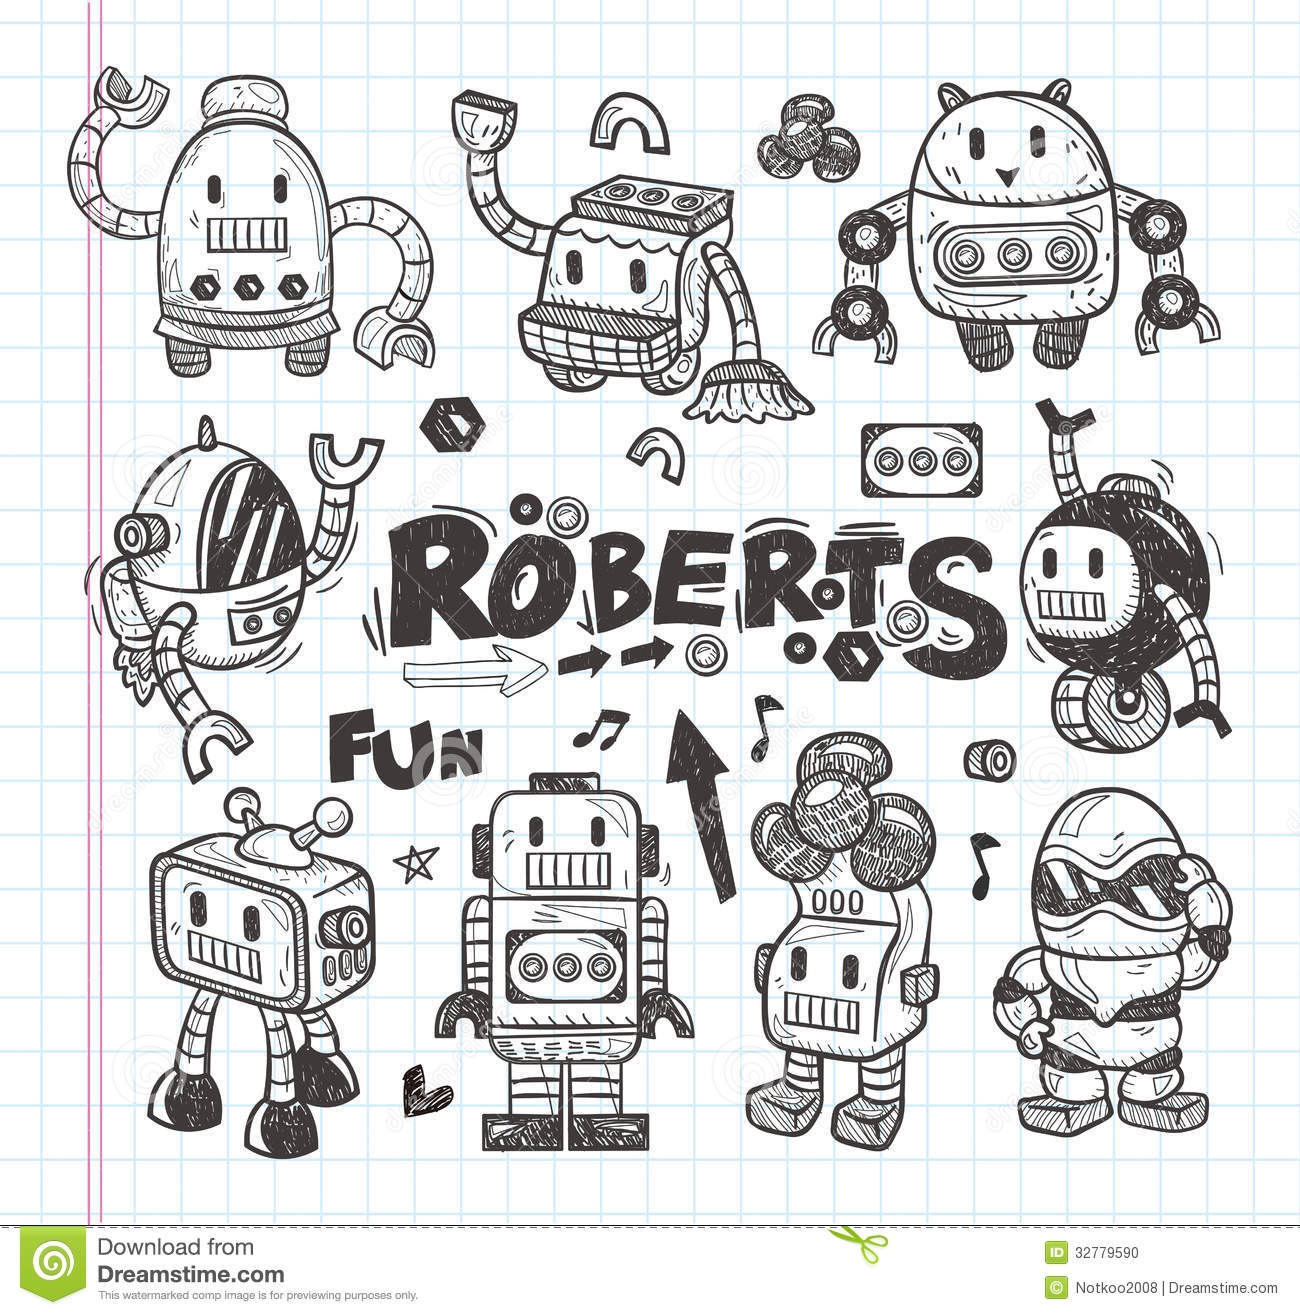 biology coloring pages - stock photo set doodle robot icons illustrator line tools drawing cartoon vector illustration image